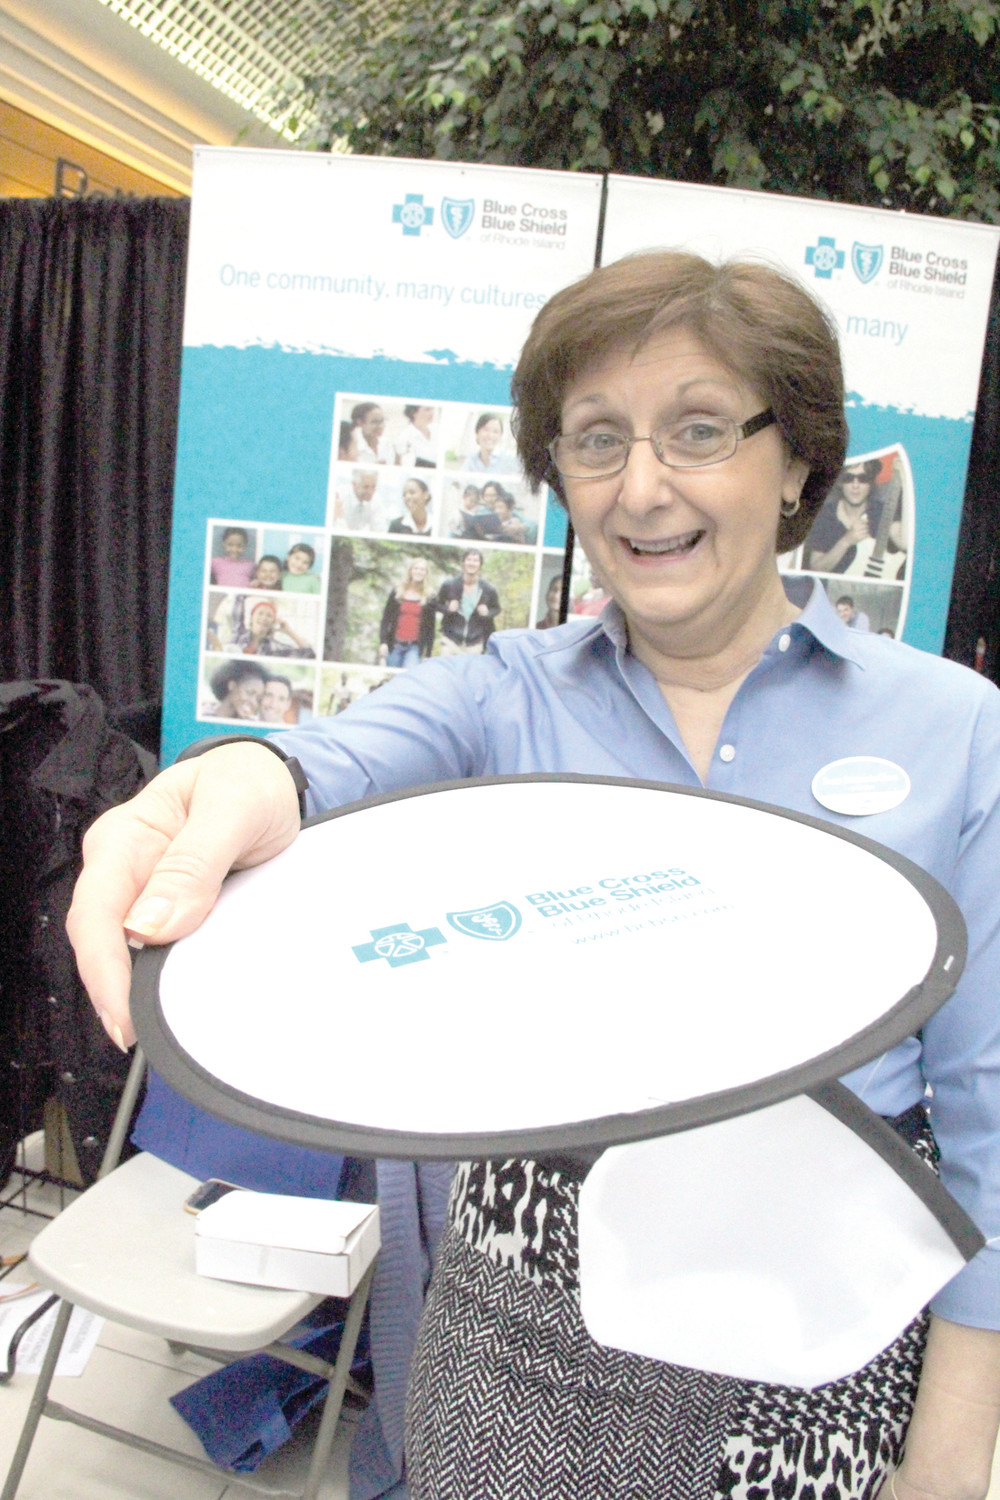 HOW TO STAY ACTIVE: At the Blue Cross/Blue Shield booth Susan Saccoccia Olson handed out foldable Frisbees.